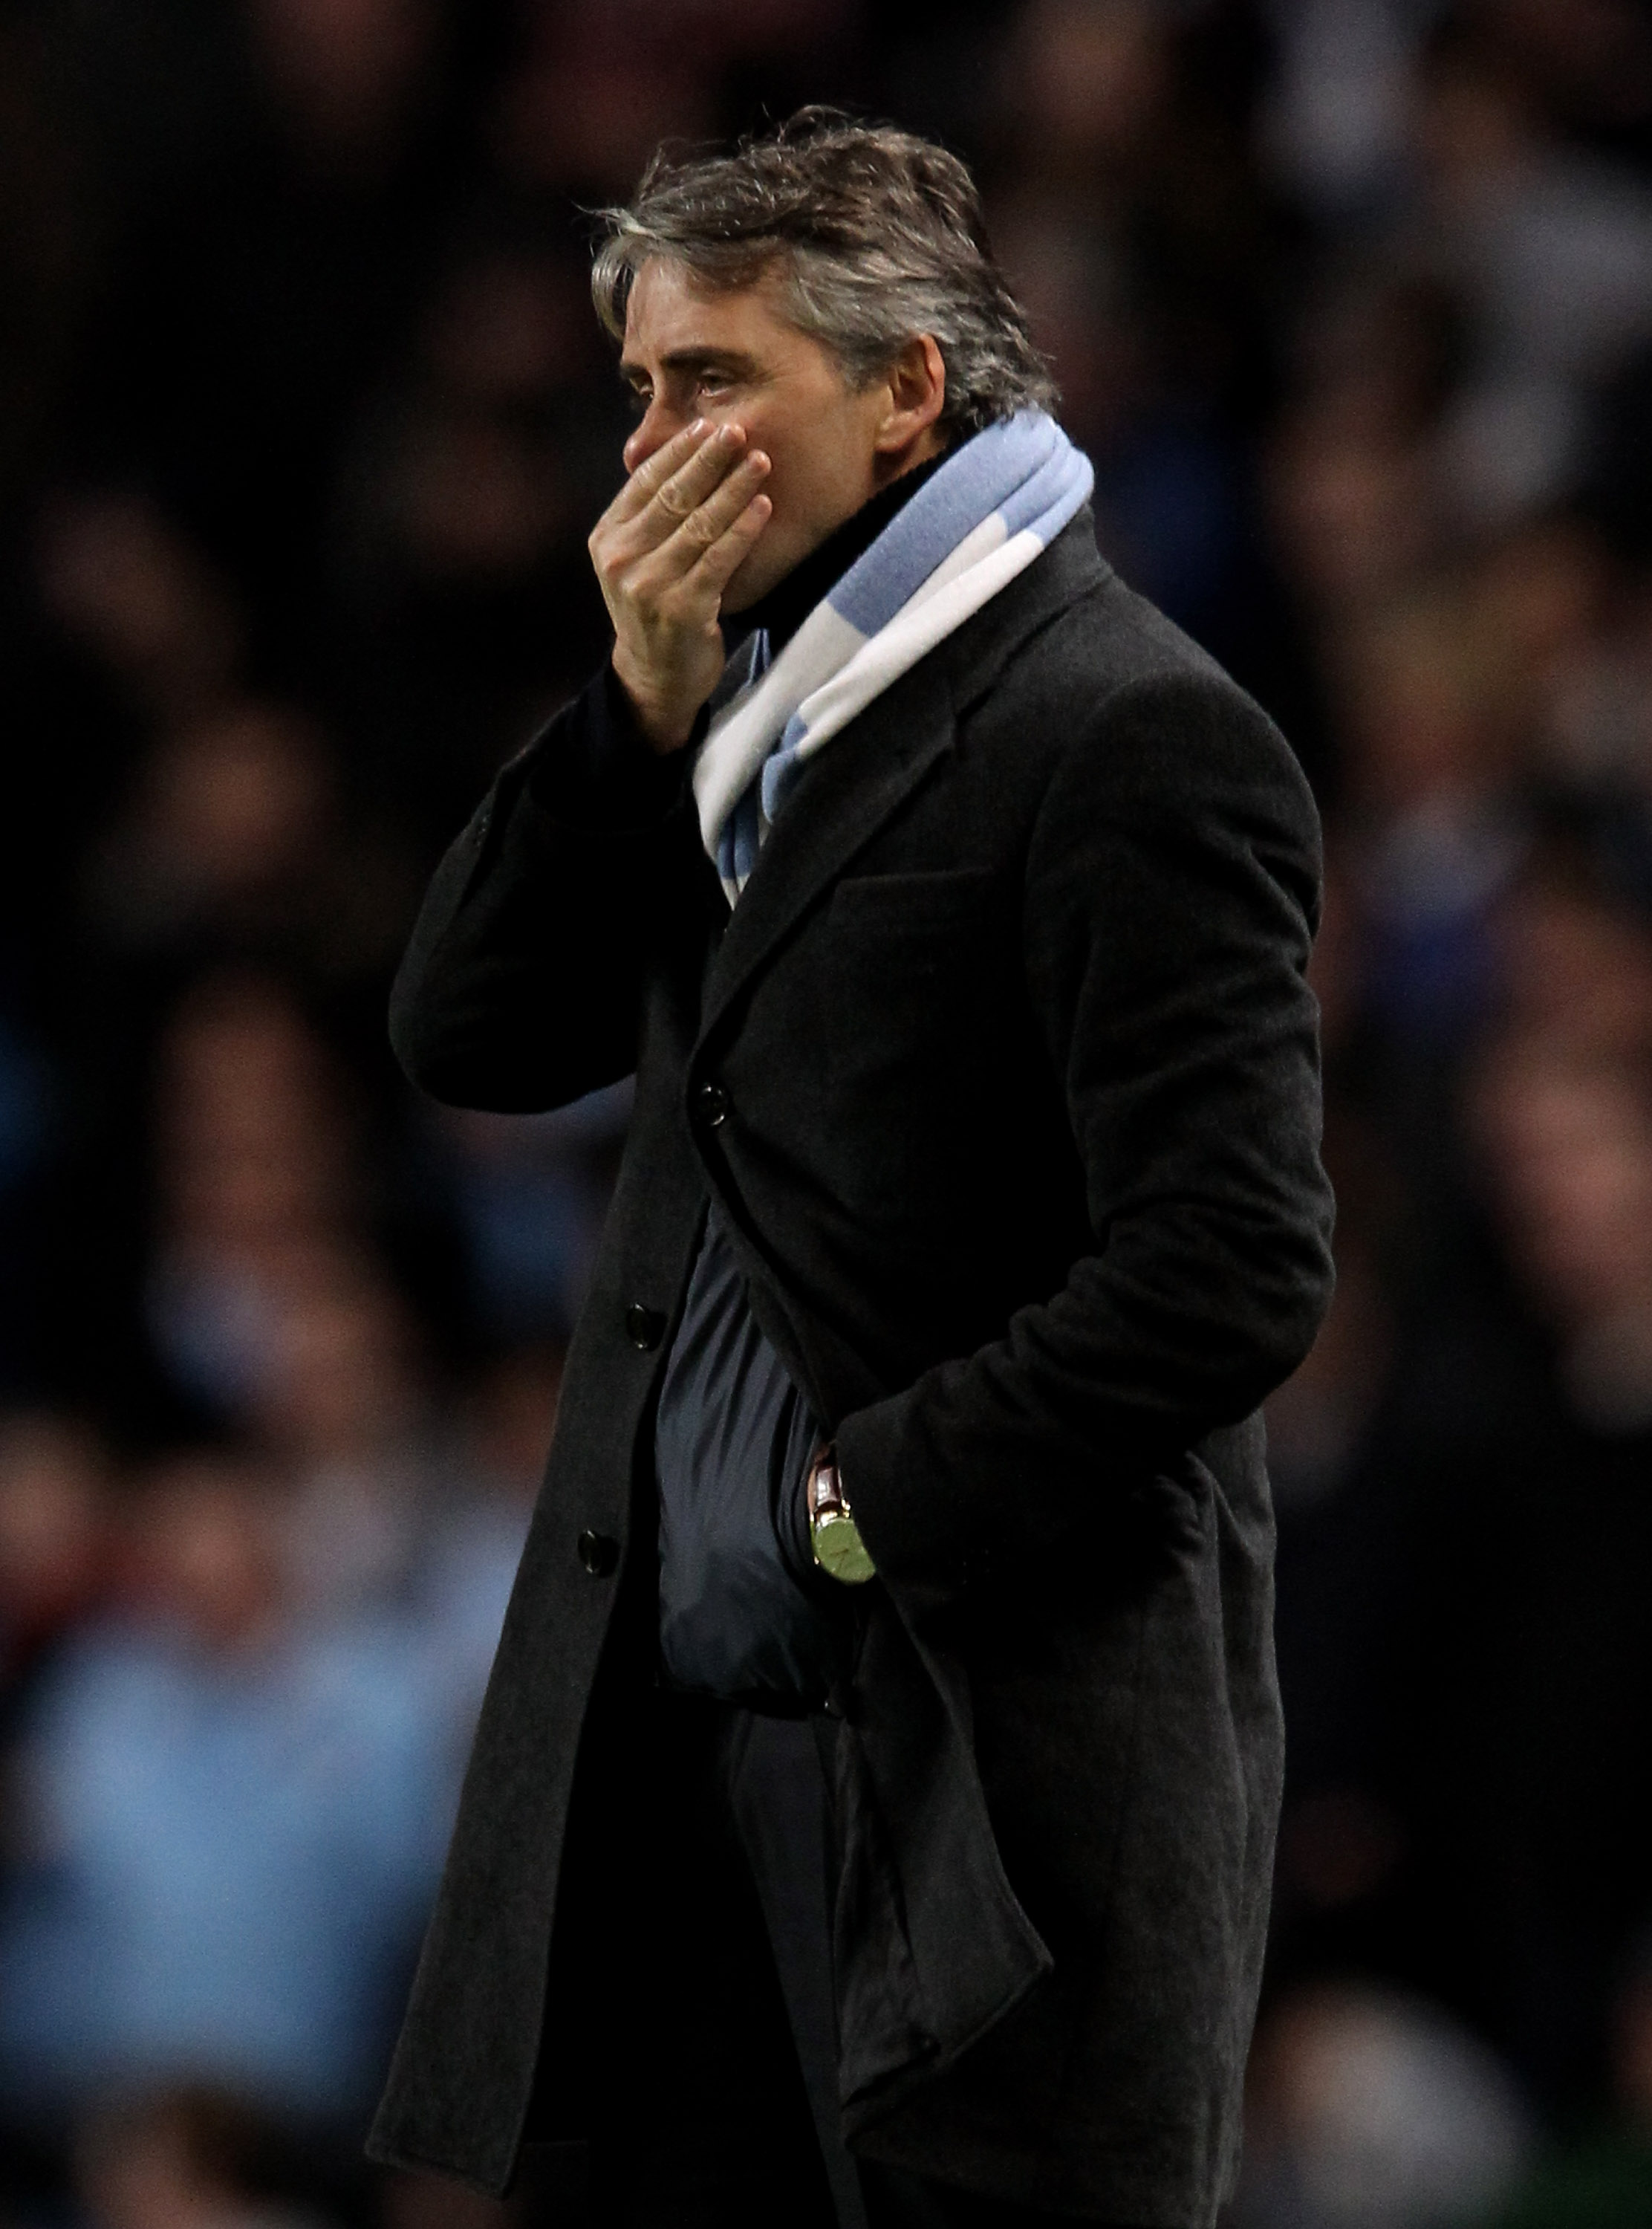 MANCHESTER, ENGLAND - JANUARY 15:  Manchester City Manager Roberto Mancini looks on during the Barclays Premier League match between Manchester City and Wolverhampton Wanderers at the City of Manchester Stadium on January 15, 2011 in Manchester, England.